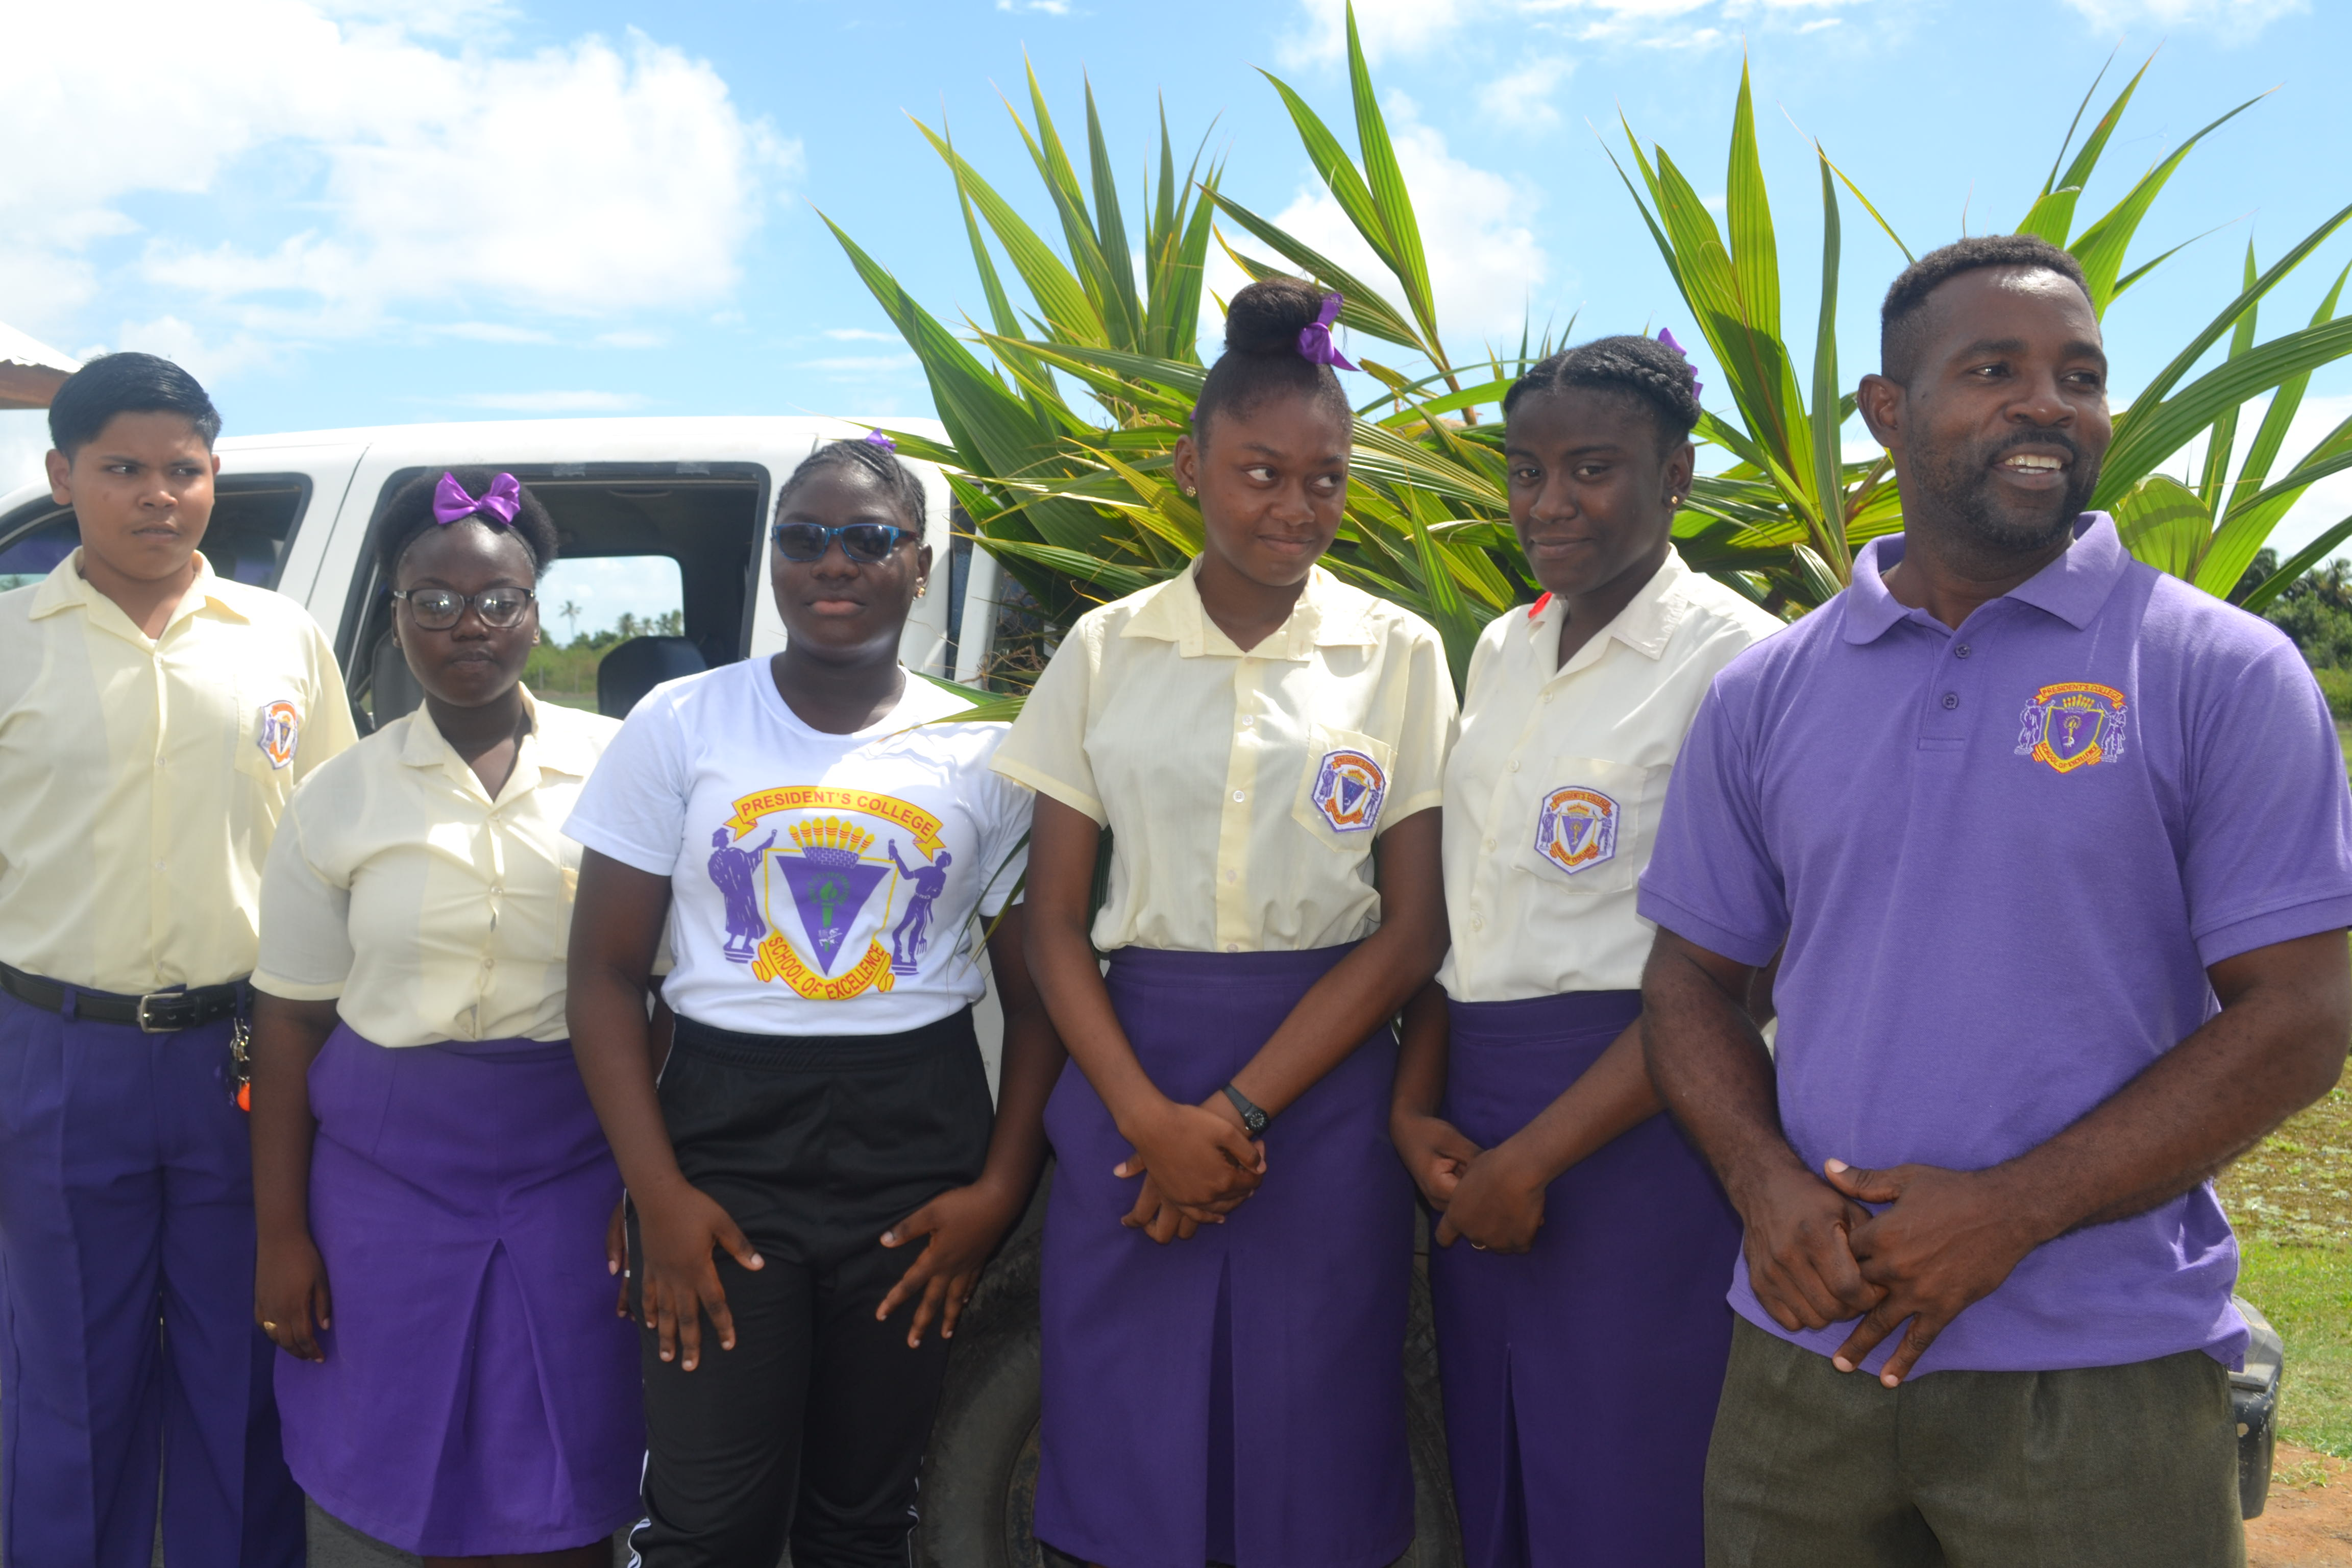 Head of the Agriculture Science Department at President's College, Mr. Cranston Richmond with some of the school's agriculture science students